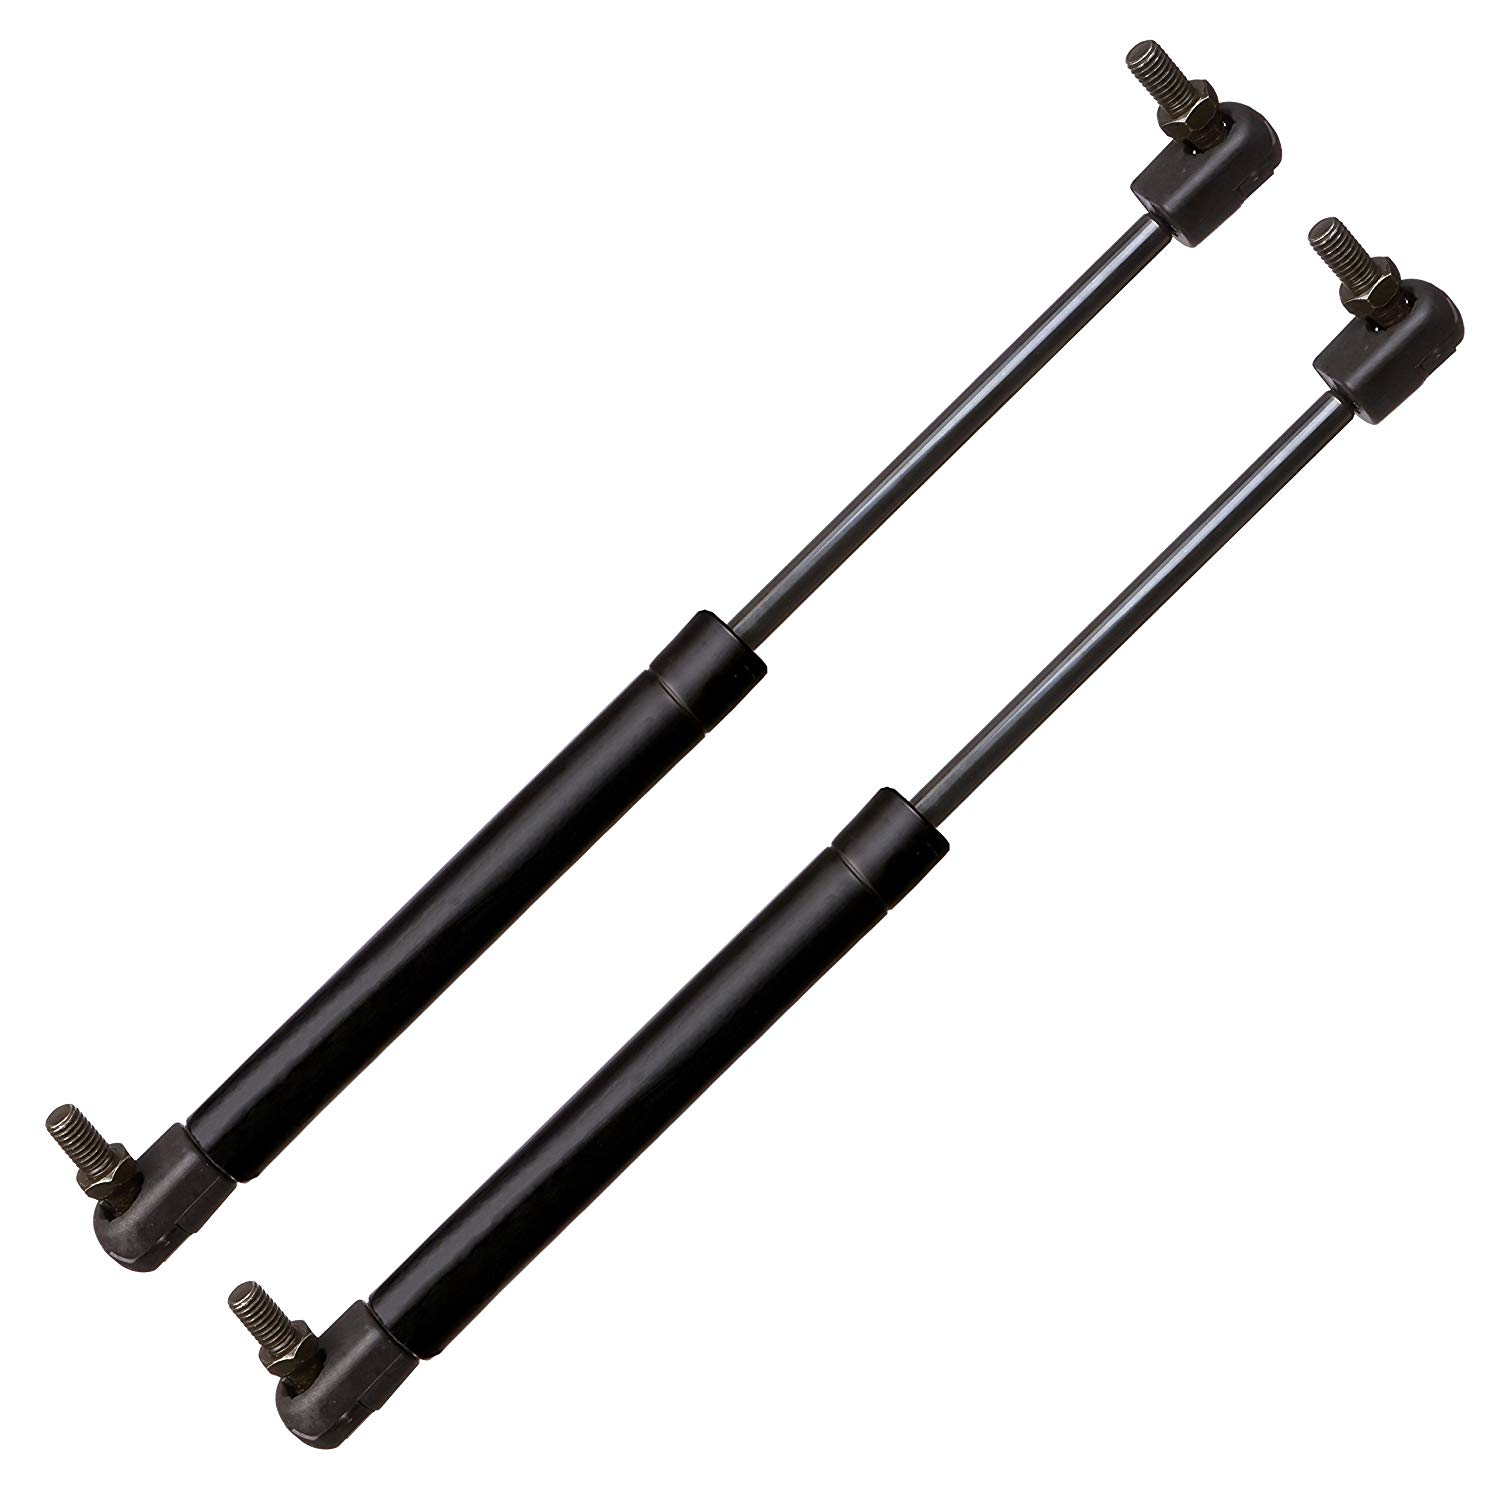 BOXI Rear Trunk Lift Supports For Mitsubishi Eclipse 2001-2005 Convertible 2 Door Trunk With Out Spoiler 4133, SG414055